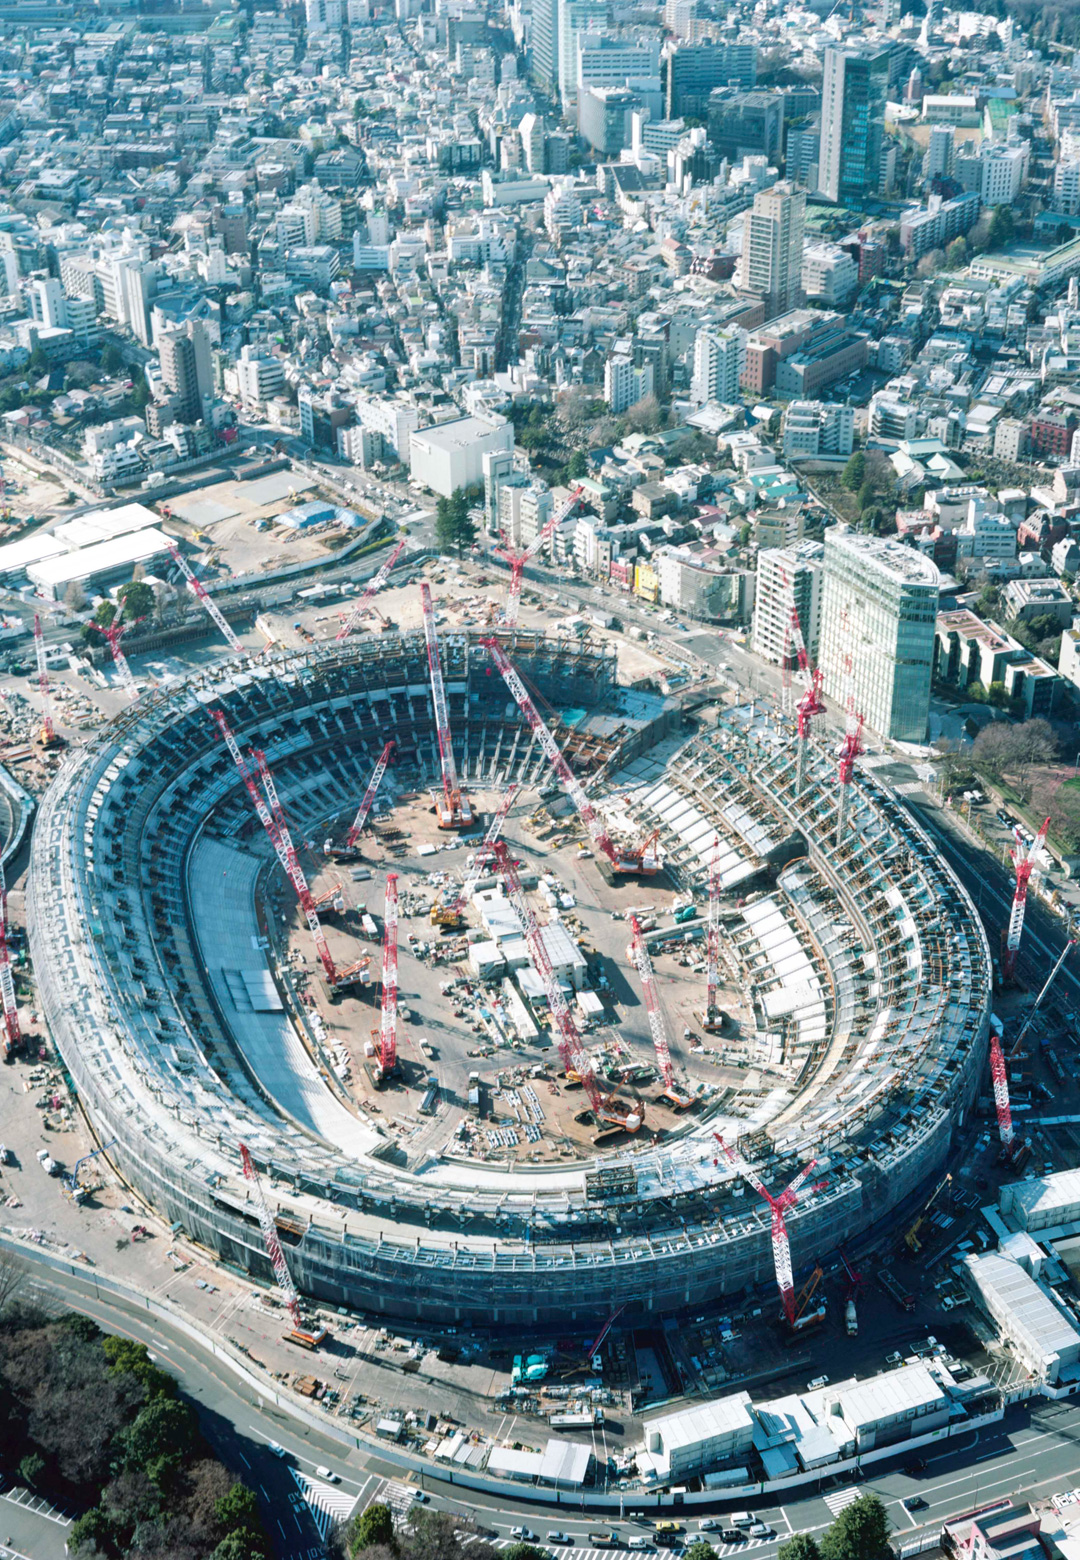 Tokyo Olympics Opening Ceremony at National Stadium (1964); New National Stadium (2017)   Made in Tokyo   STIRworld